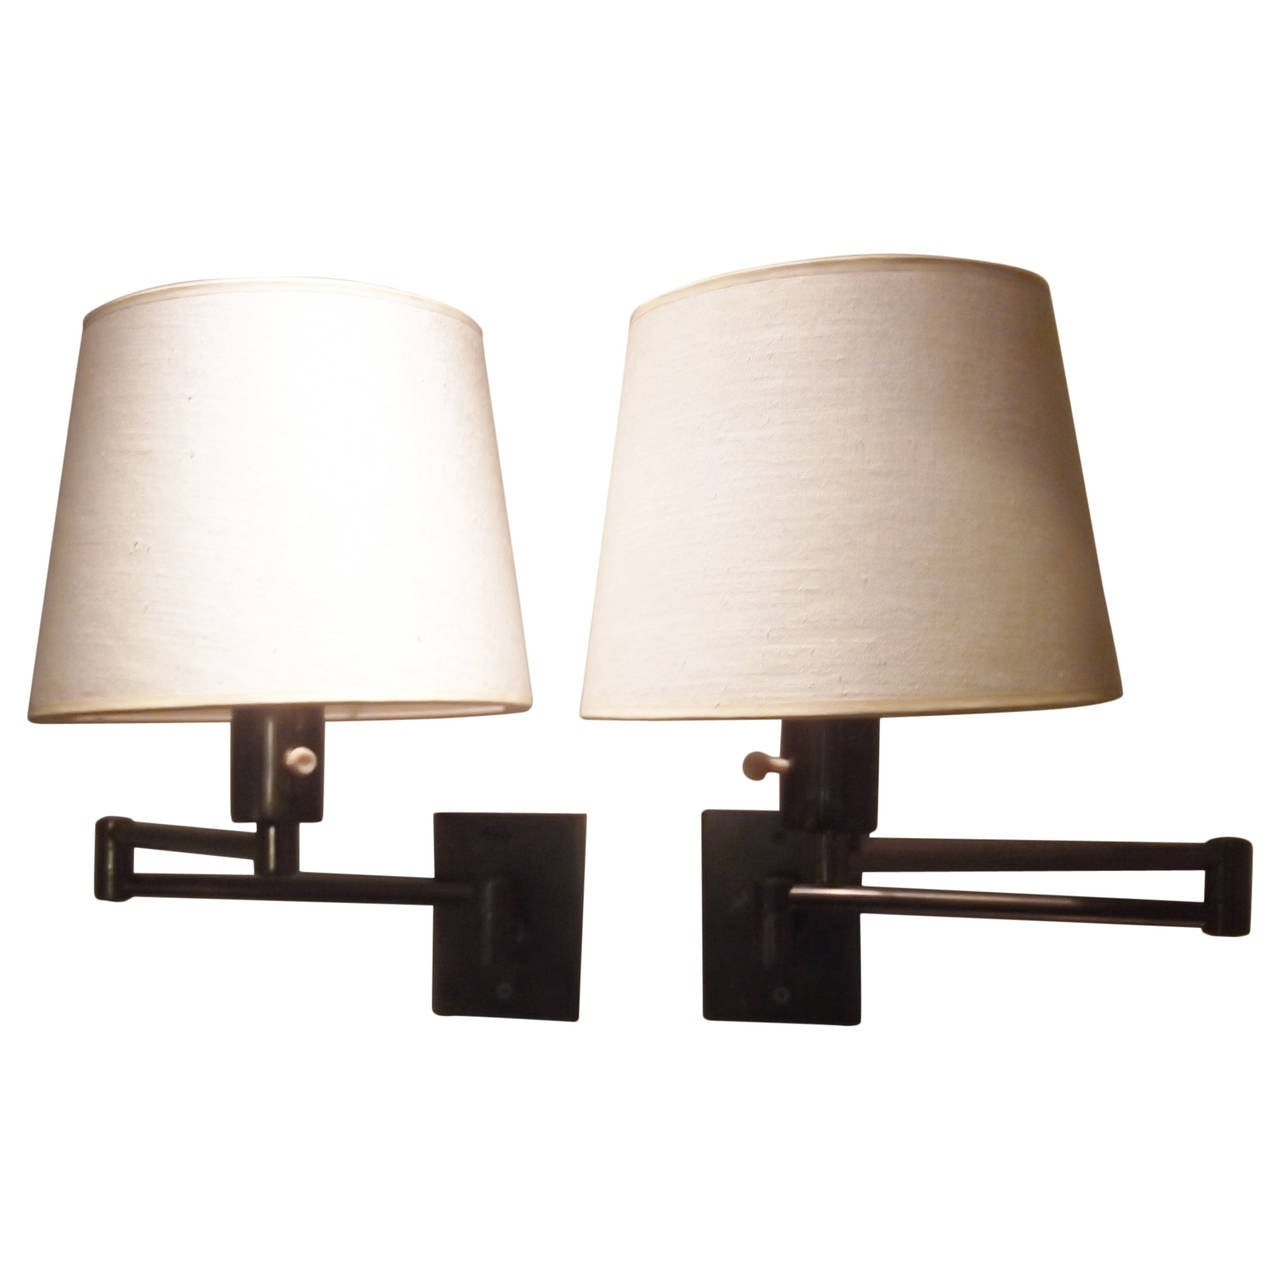 Pair of Brass Mid Century Hansen Swing Arm Wall-Mounted Lamps at 1stdibs